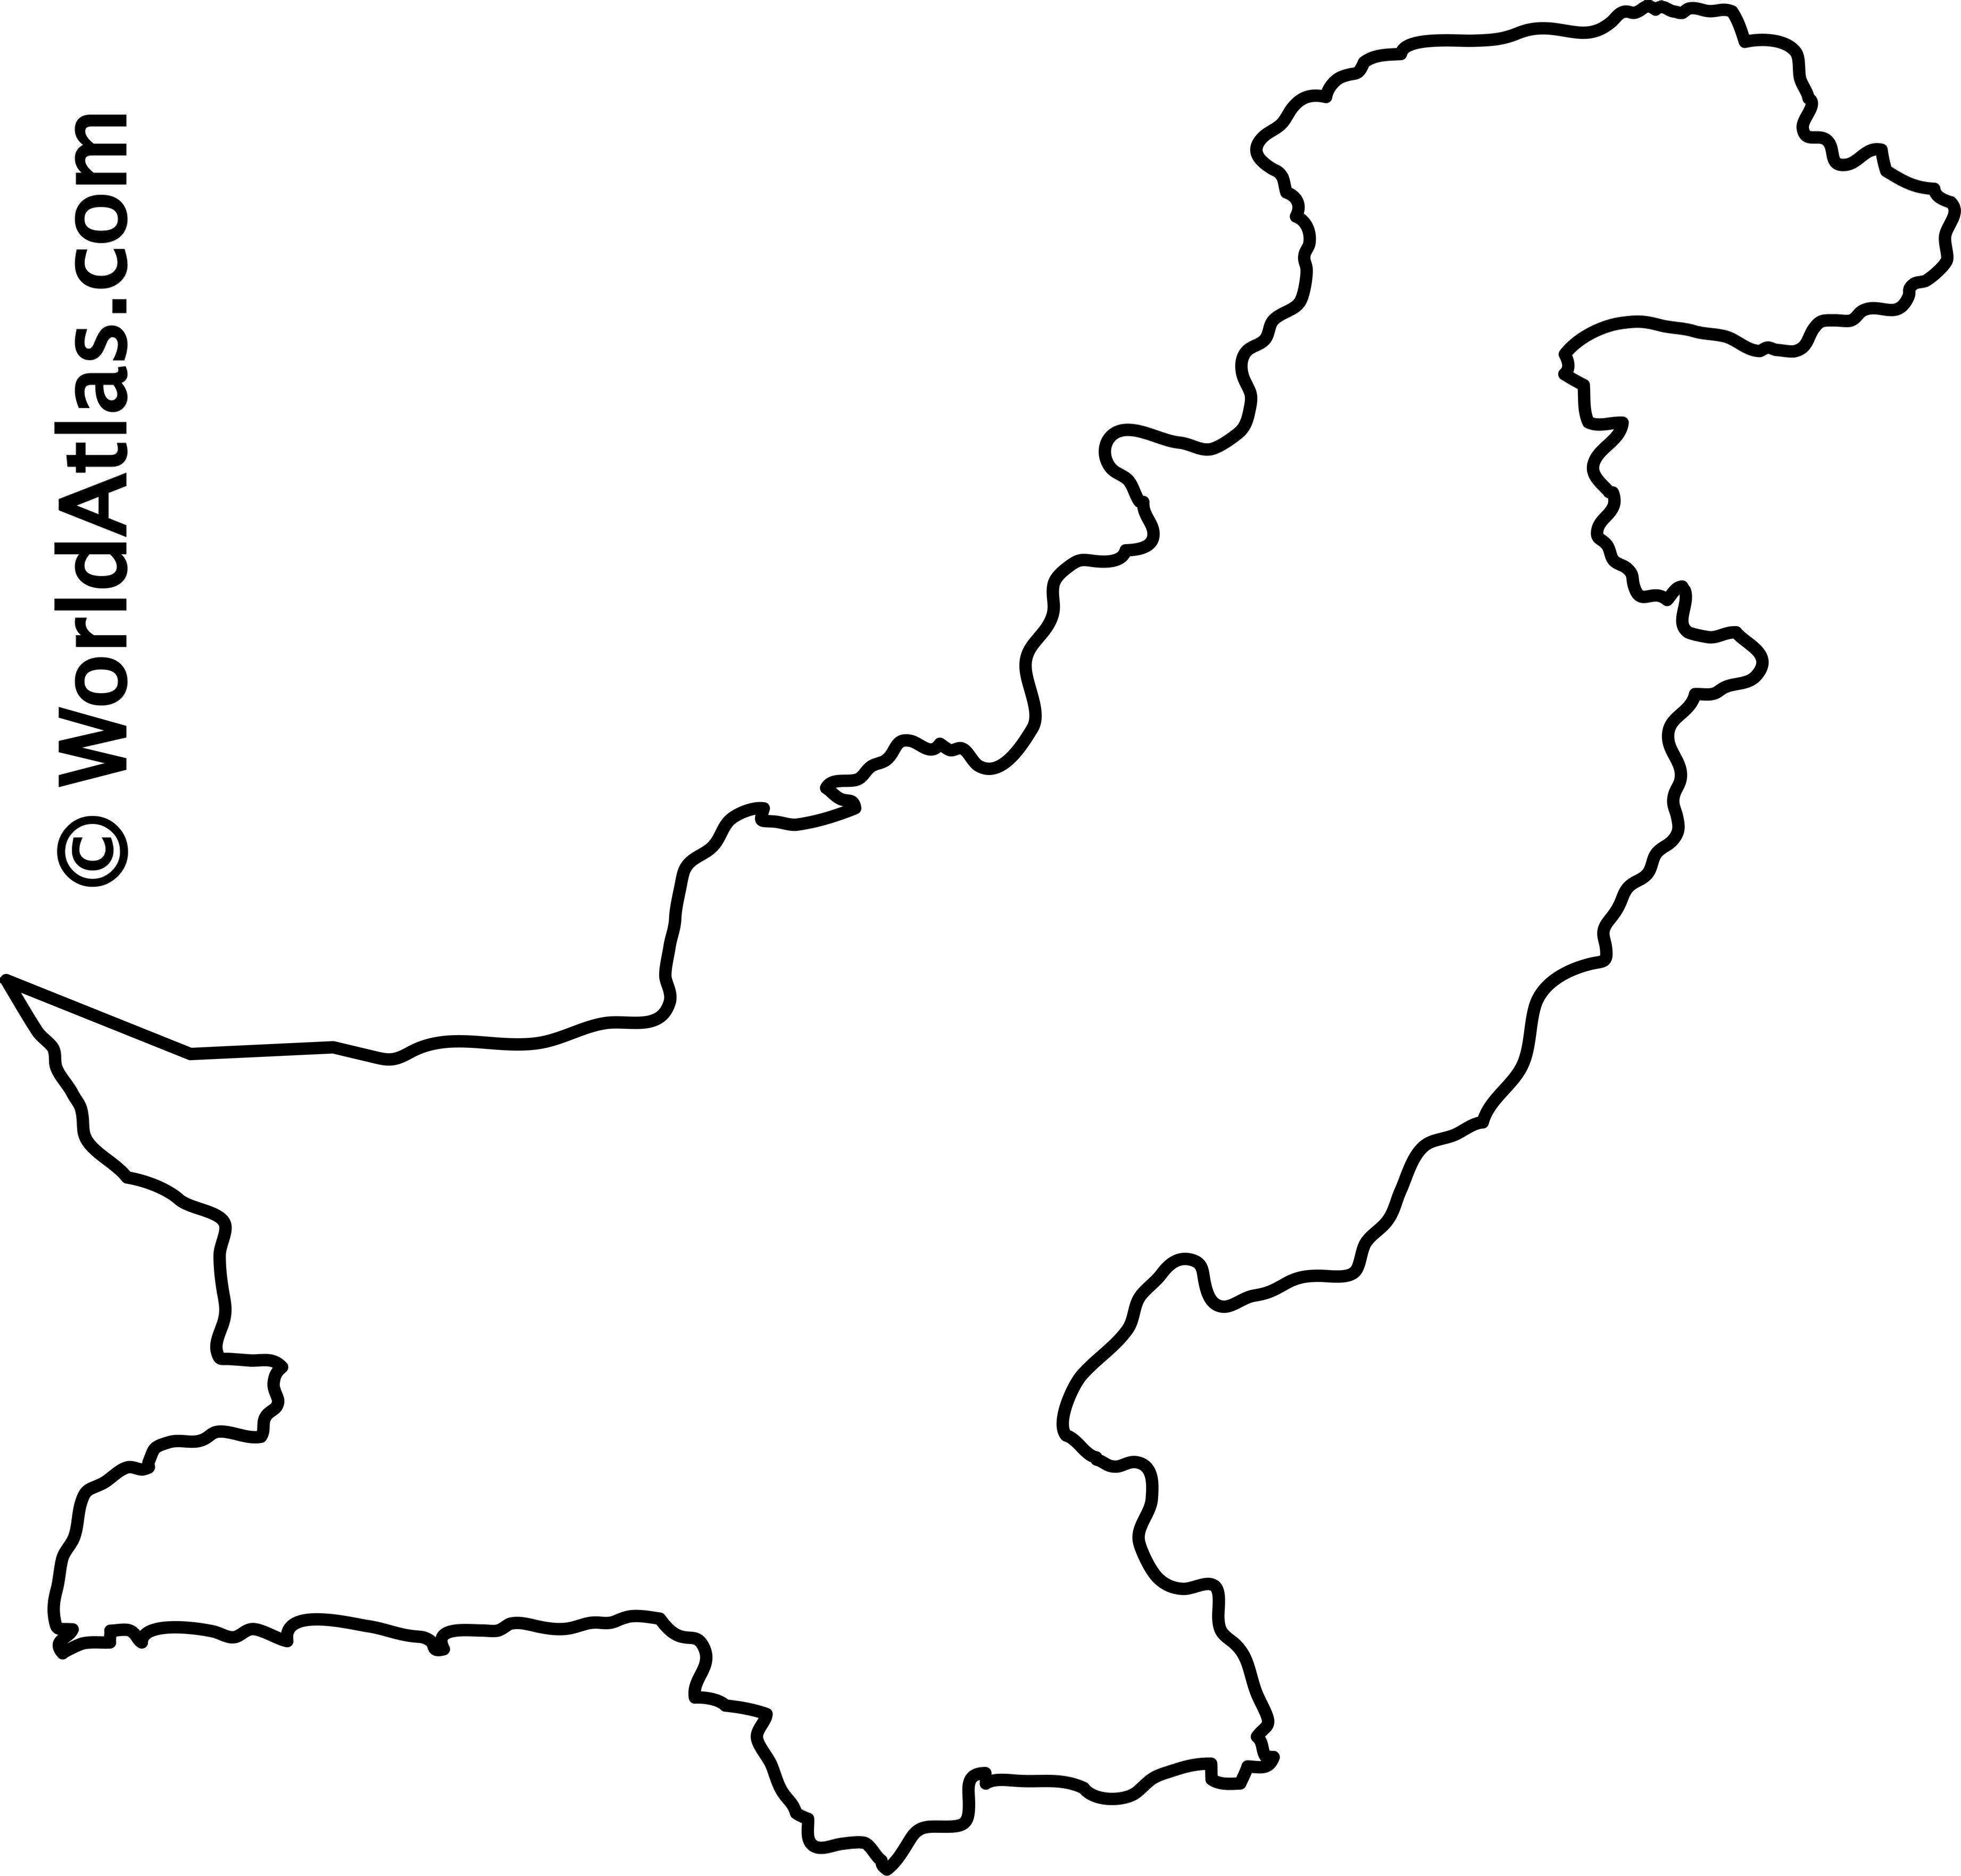 Blank Outline Map of Pakistan